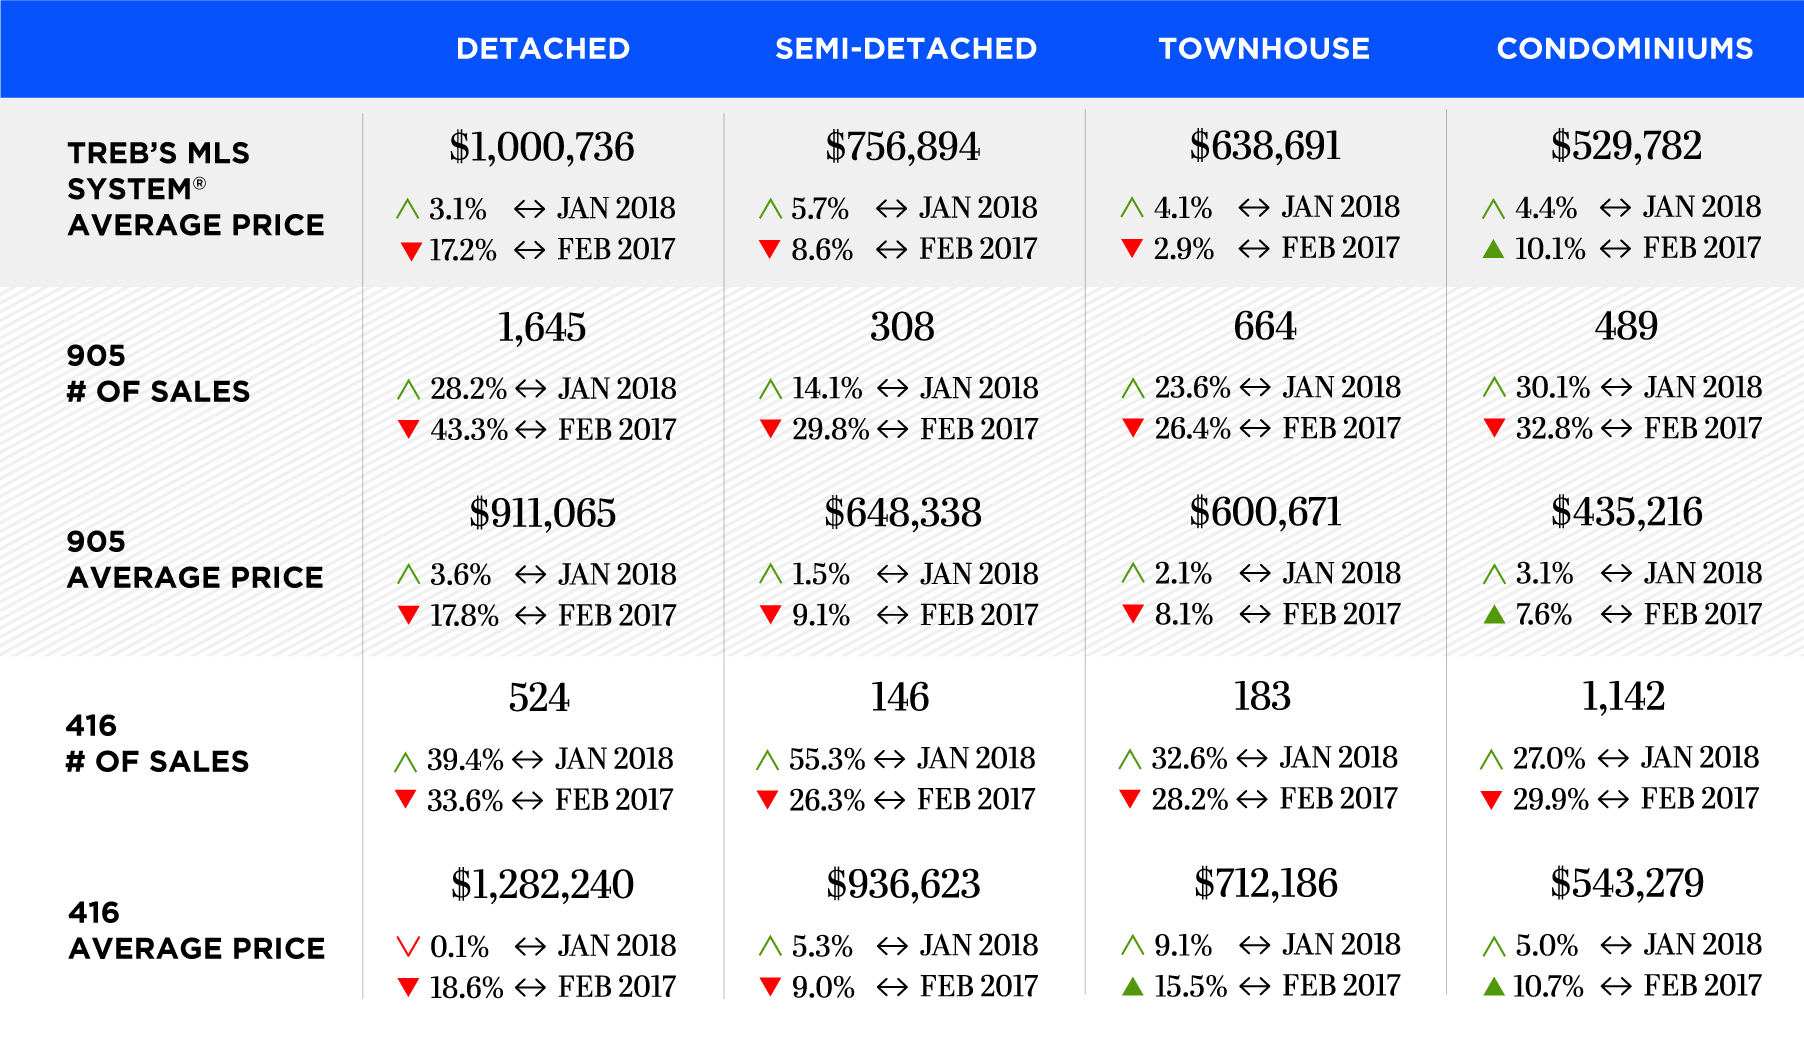 GTA Sales & Average Price by Home Type -February2018